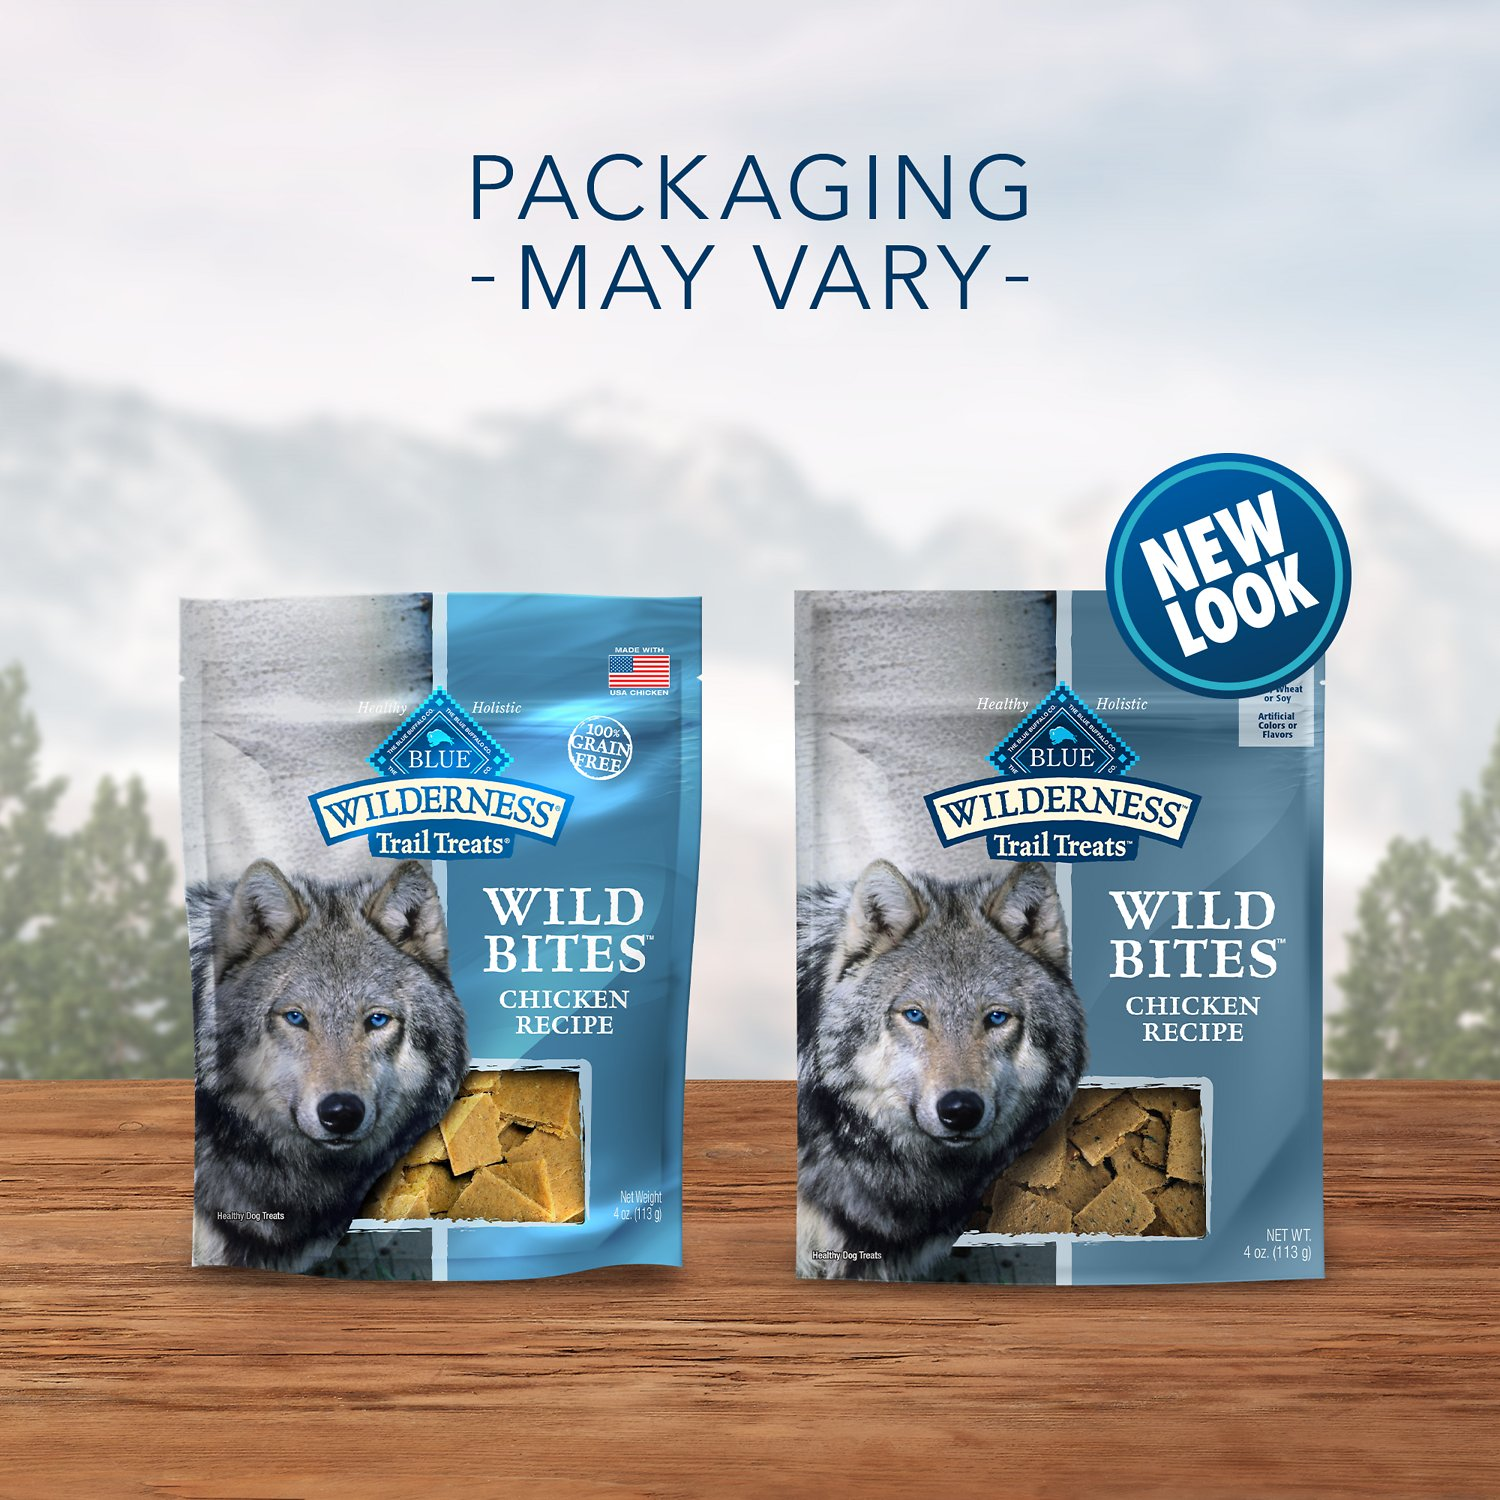 Blue Buffalo Wilderness Trail Treats Grain Free Wild Bites Dog Treats